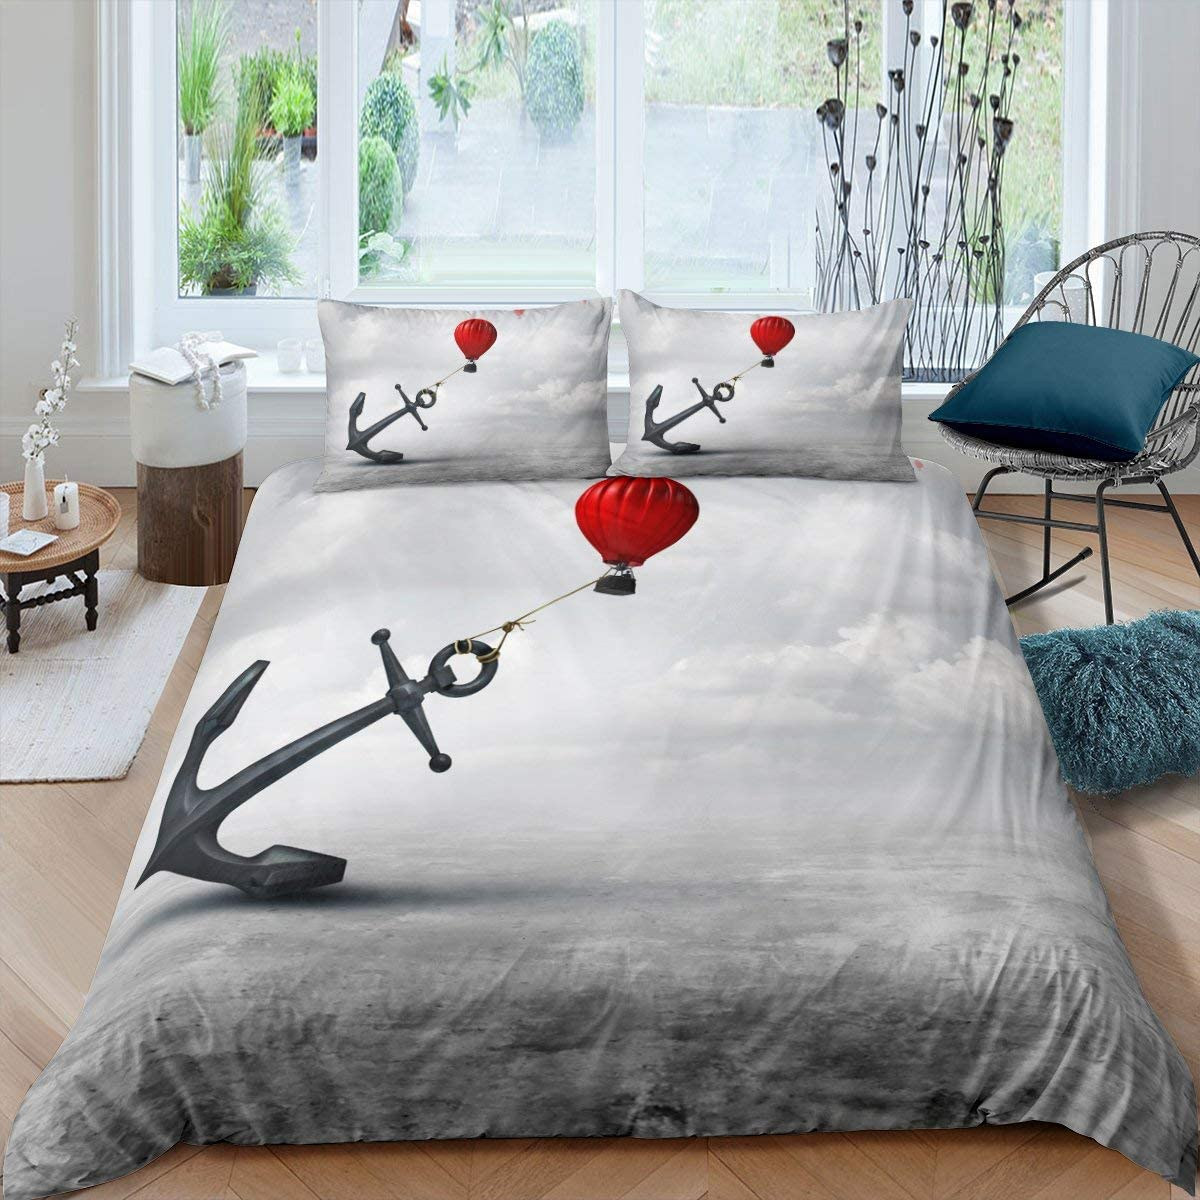 Anchor Duvet Cover Set King Size, 3 Pieces Nautical Anchor Comforter Cover with Red Hot Air Balloon Decor Bedding Set, Adult Women Girls Ship Anchor Marine Life Decorative Soft Bedding Quilt Cover